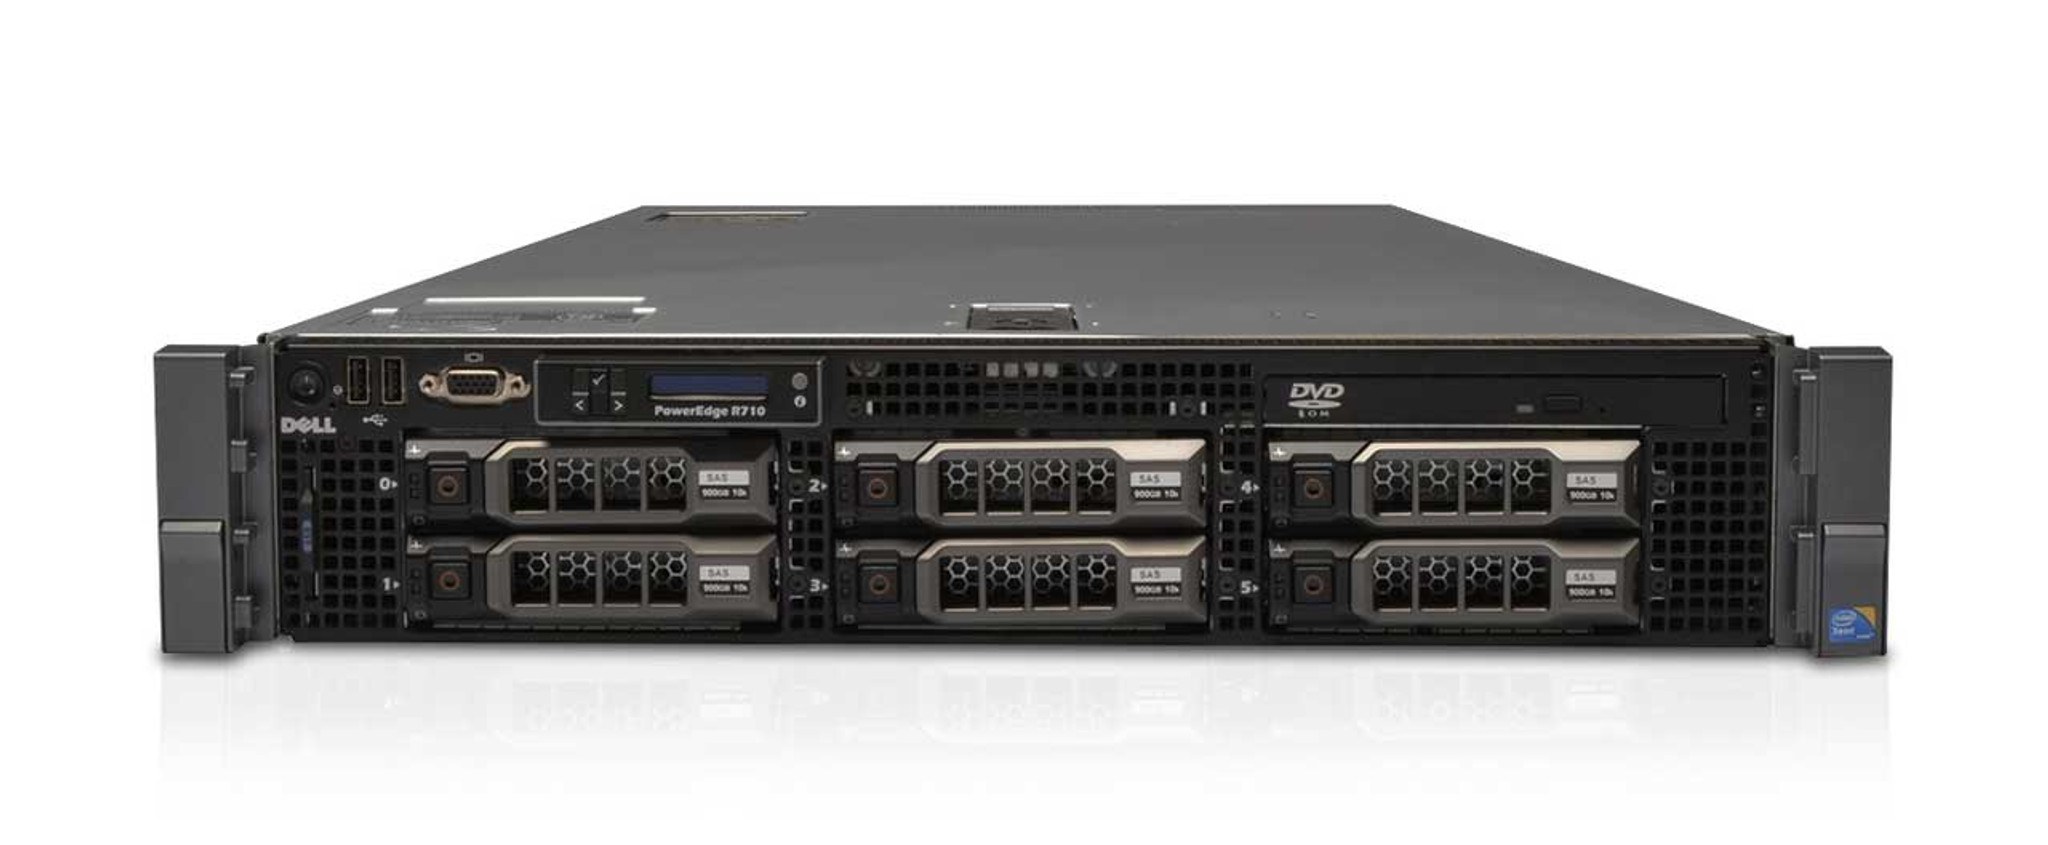 Dell PowerEdge R710 Server - 3 5